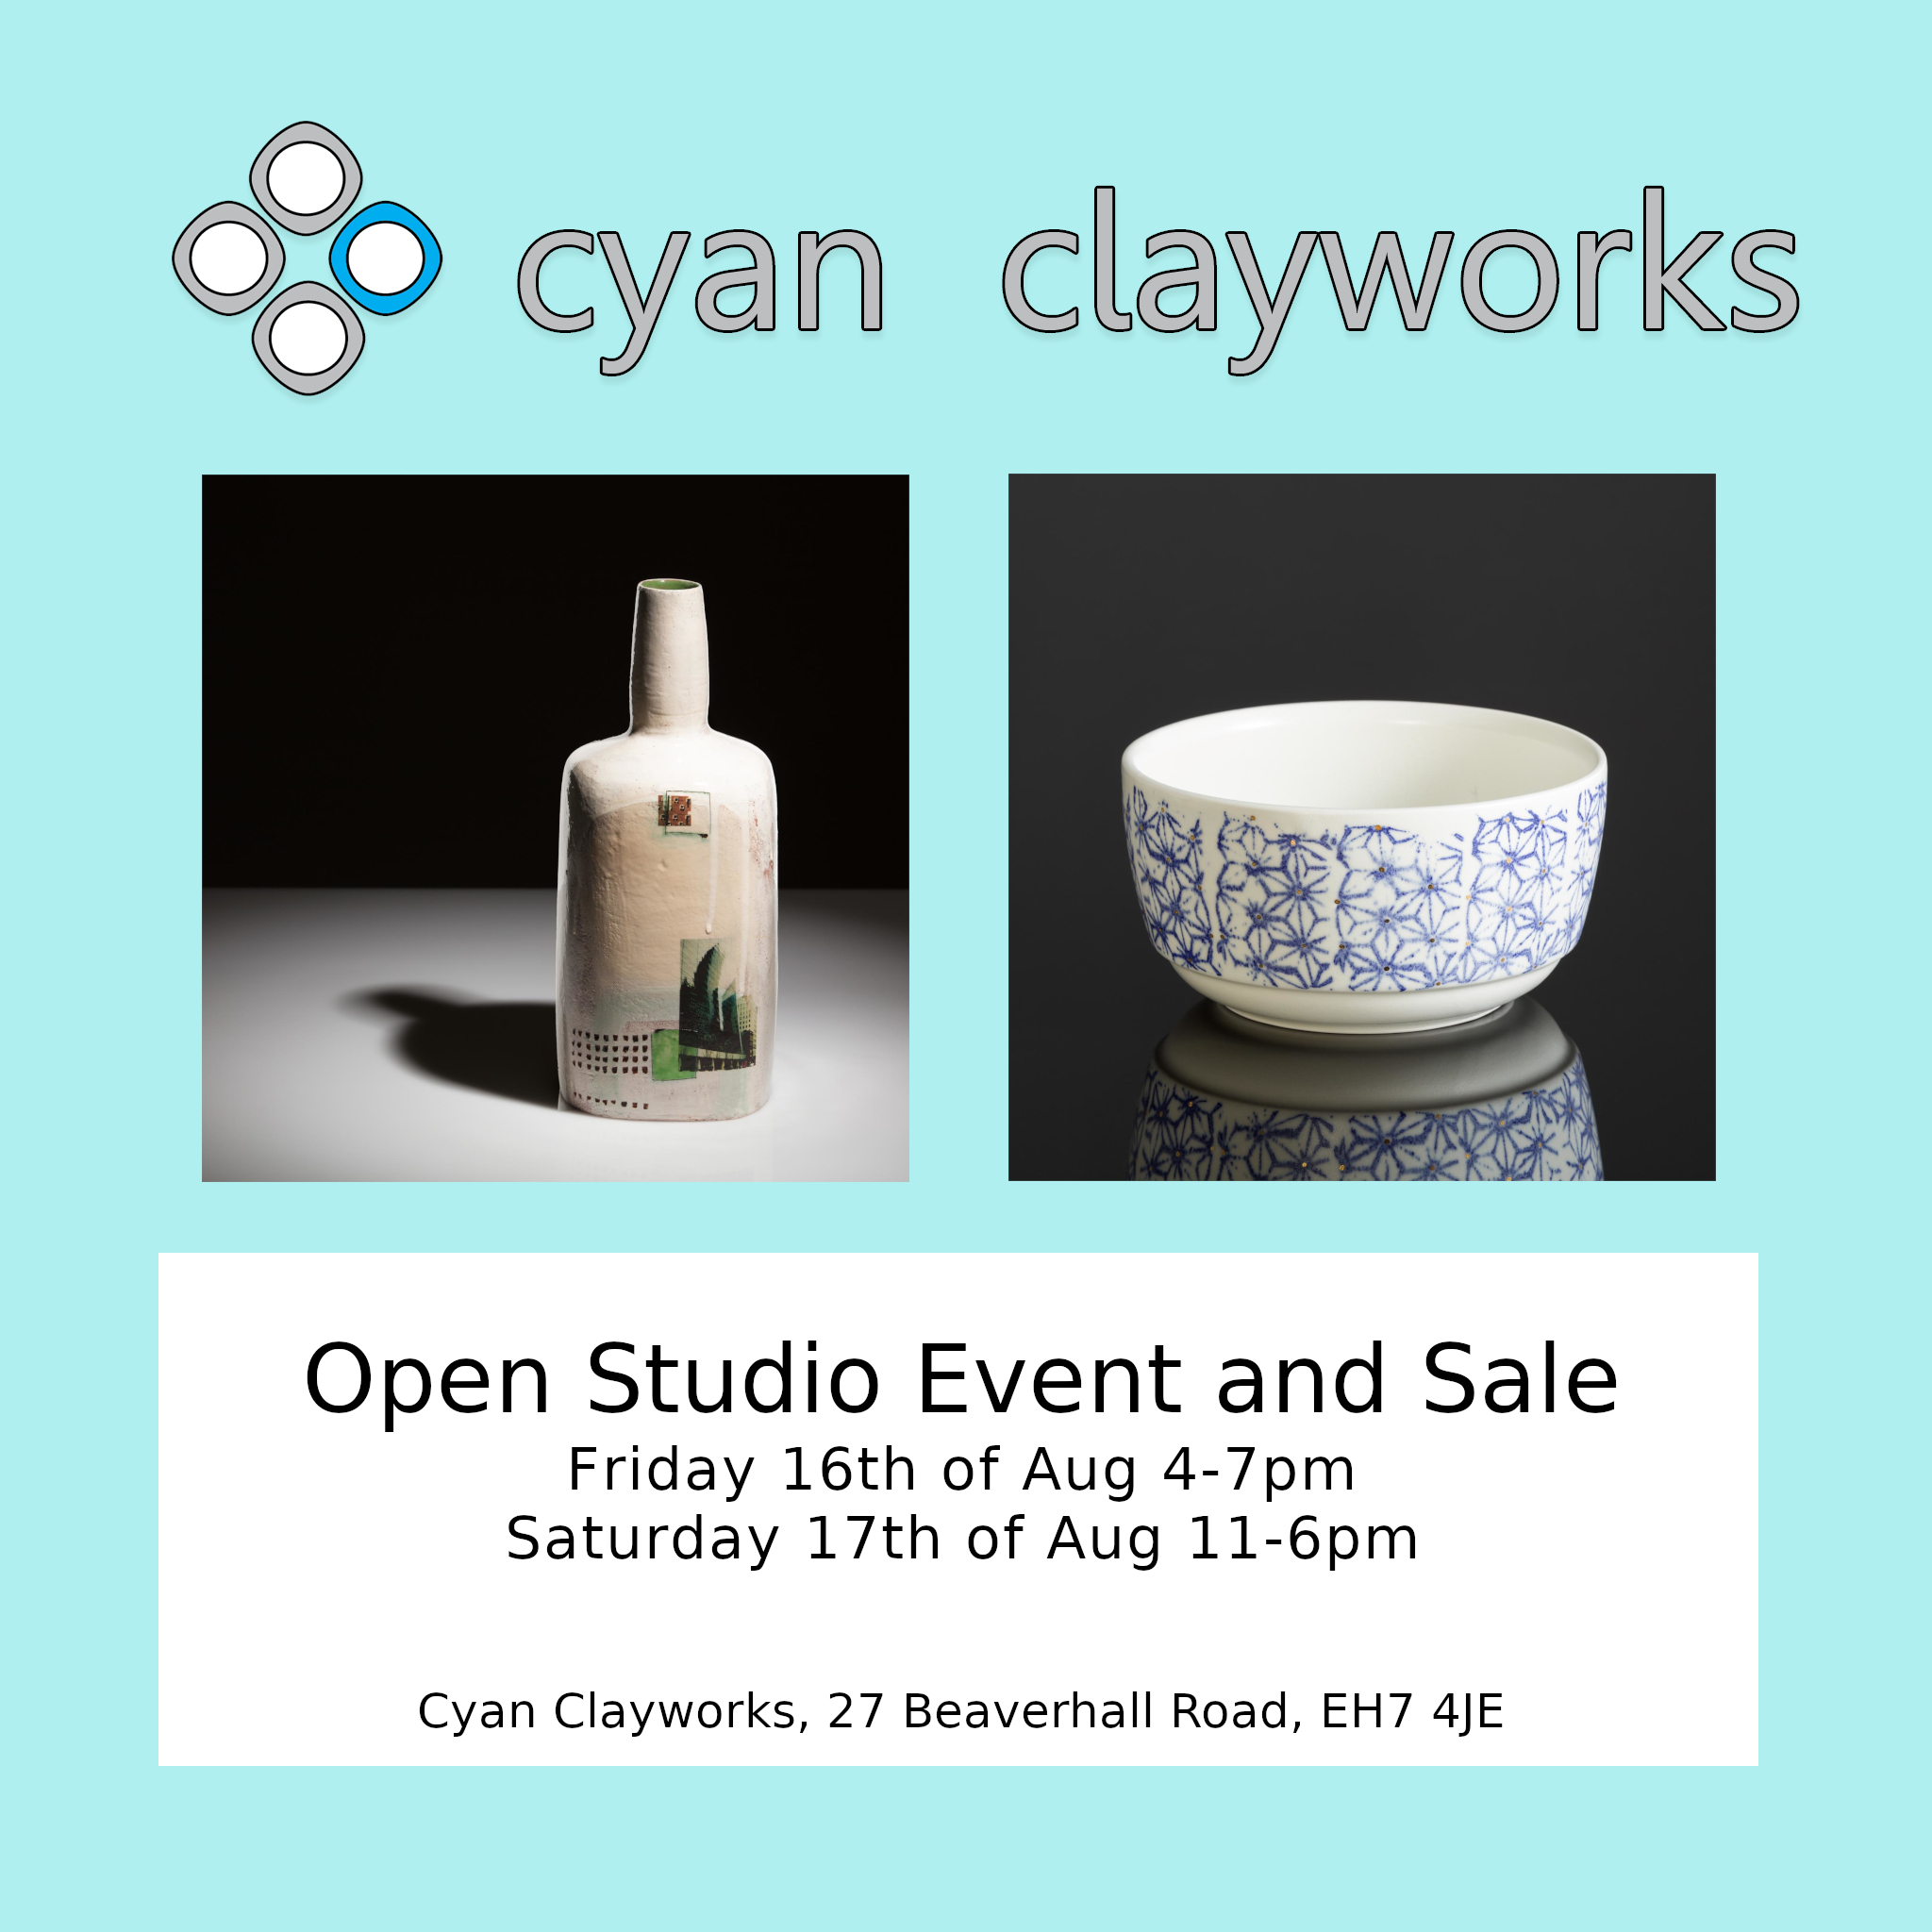 Cyan Clayworks open studio & sale